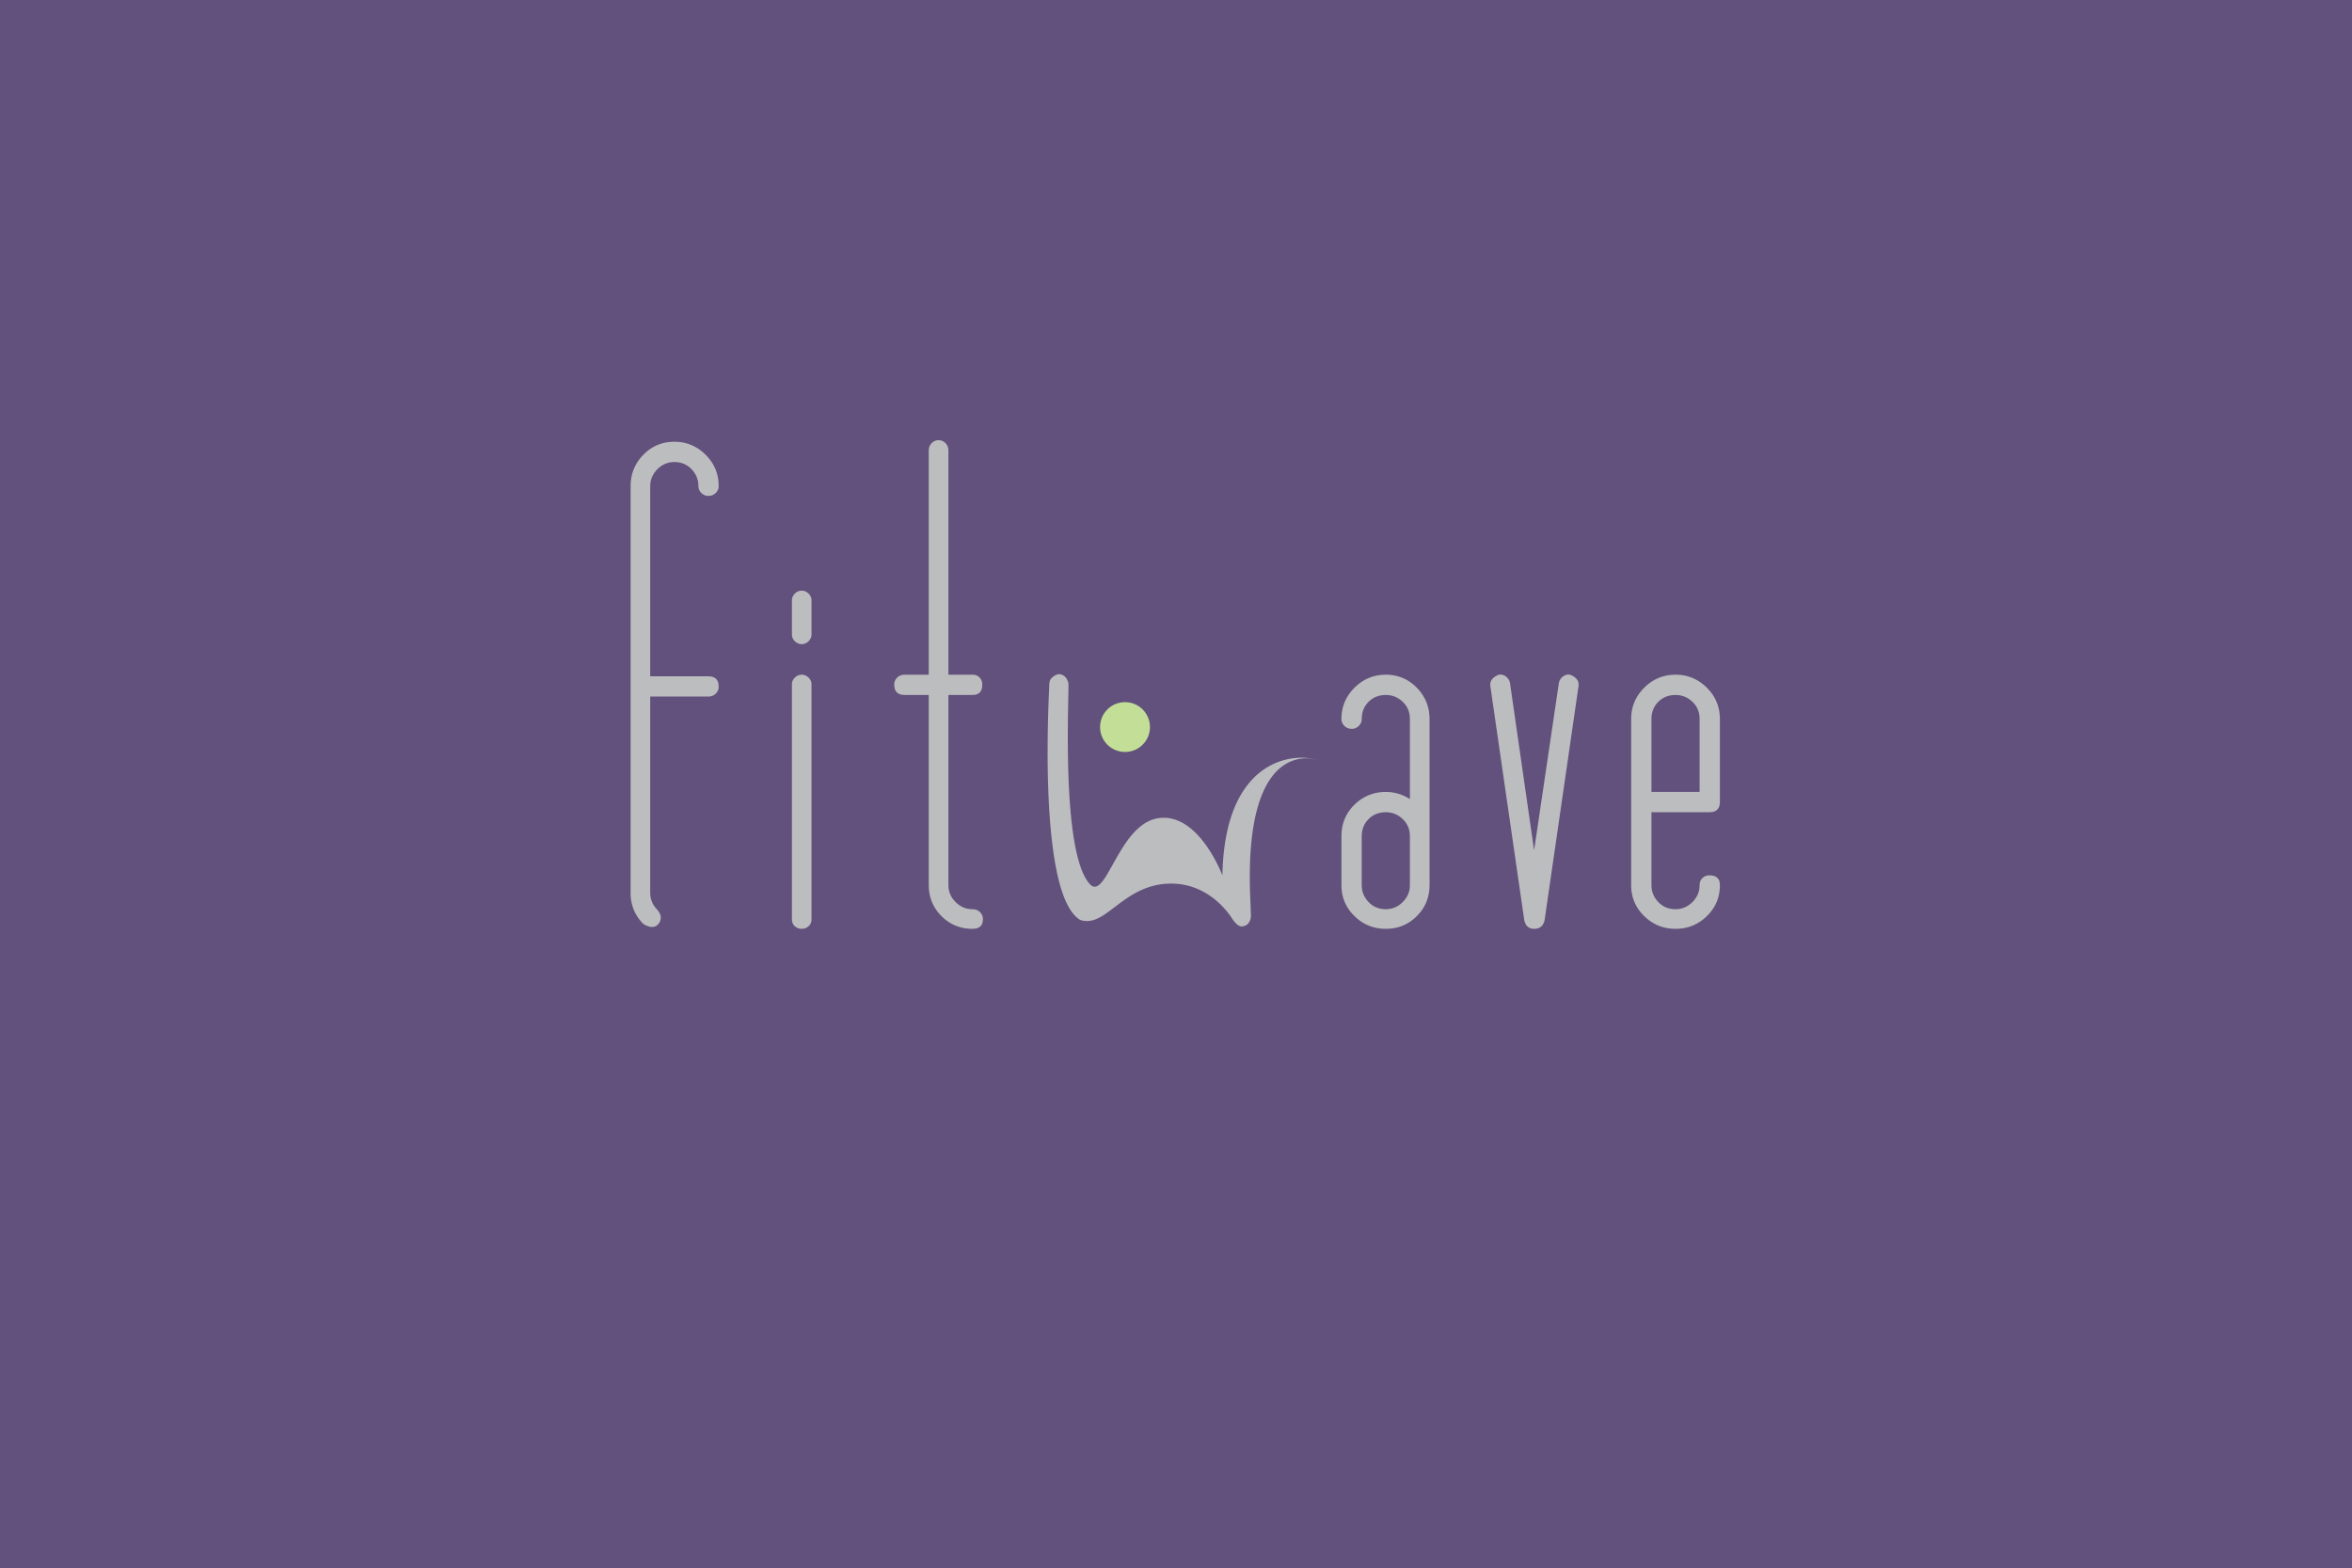 fitwave1a